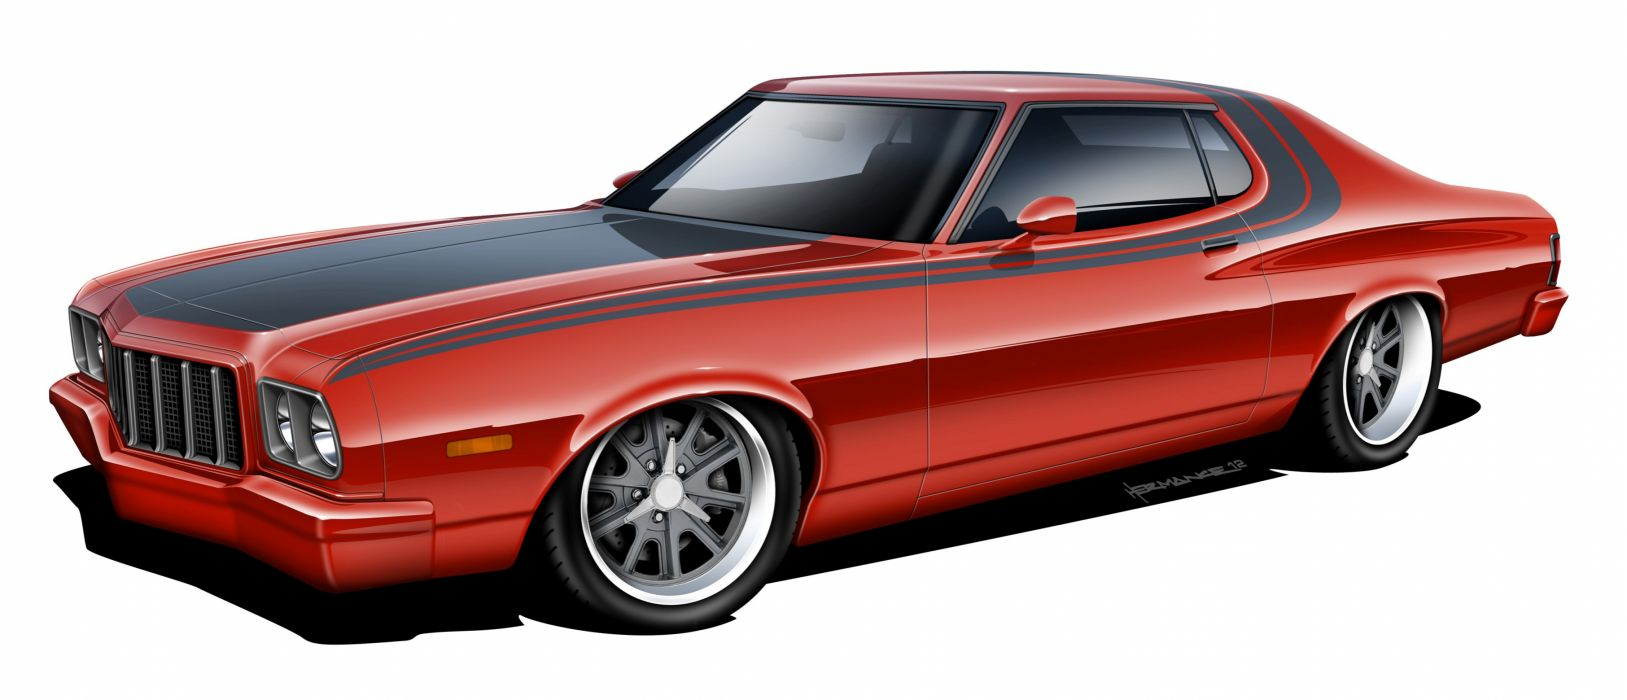 hot rod rods classic muscle 1976 Ford Gran Torino      g wallpaper